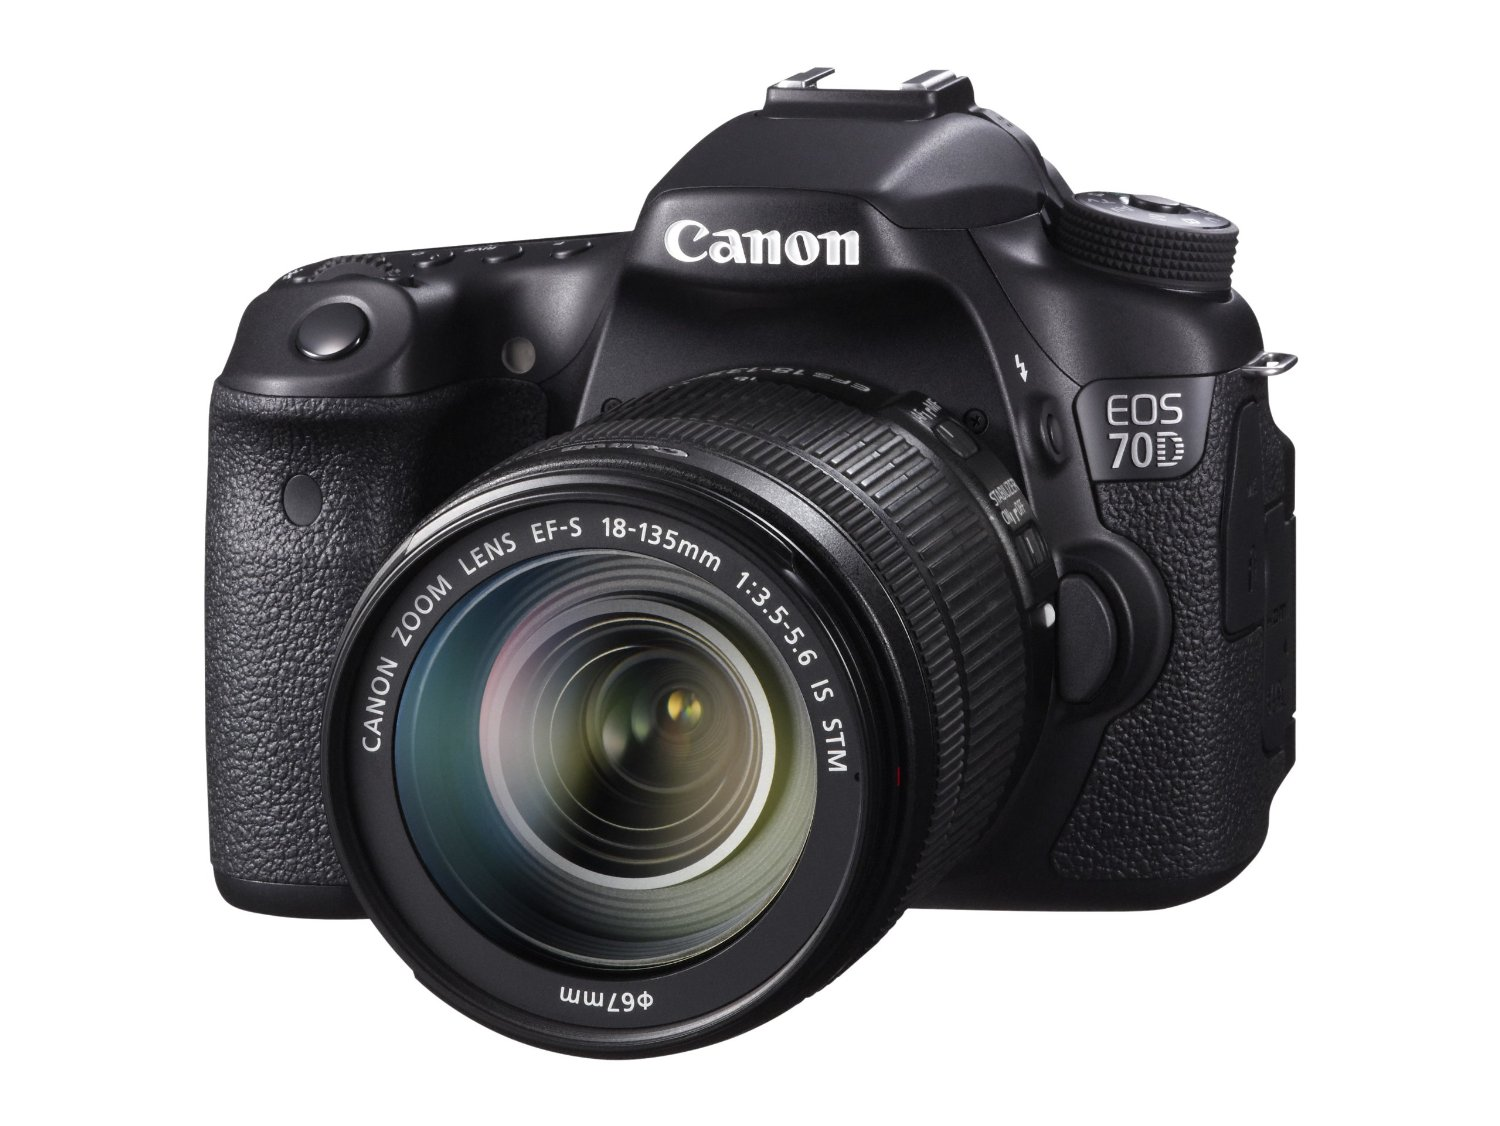 Canon EOS 70D Digital SLR Camera w18-135mm Lens